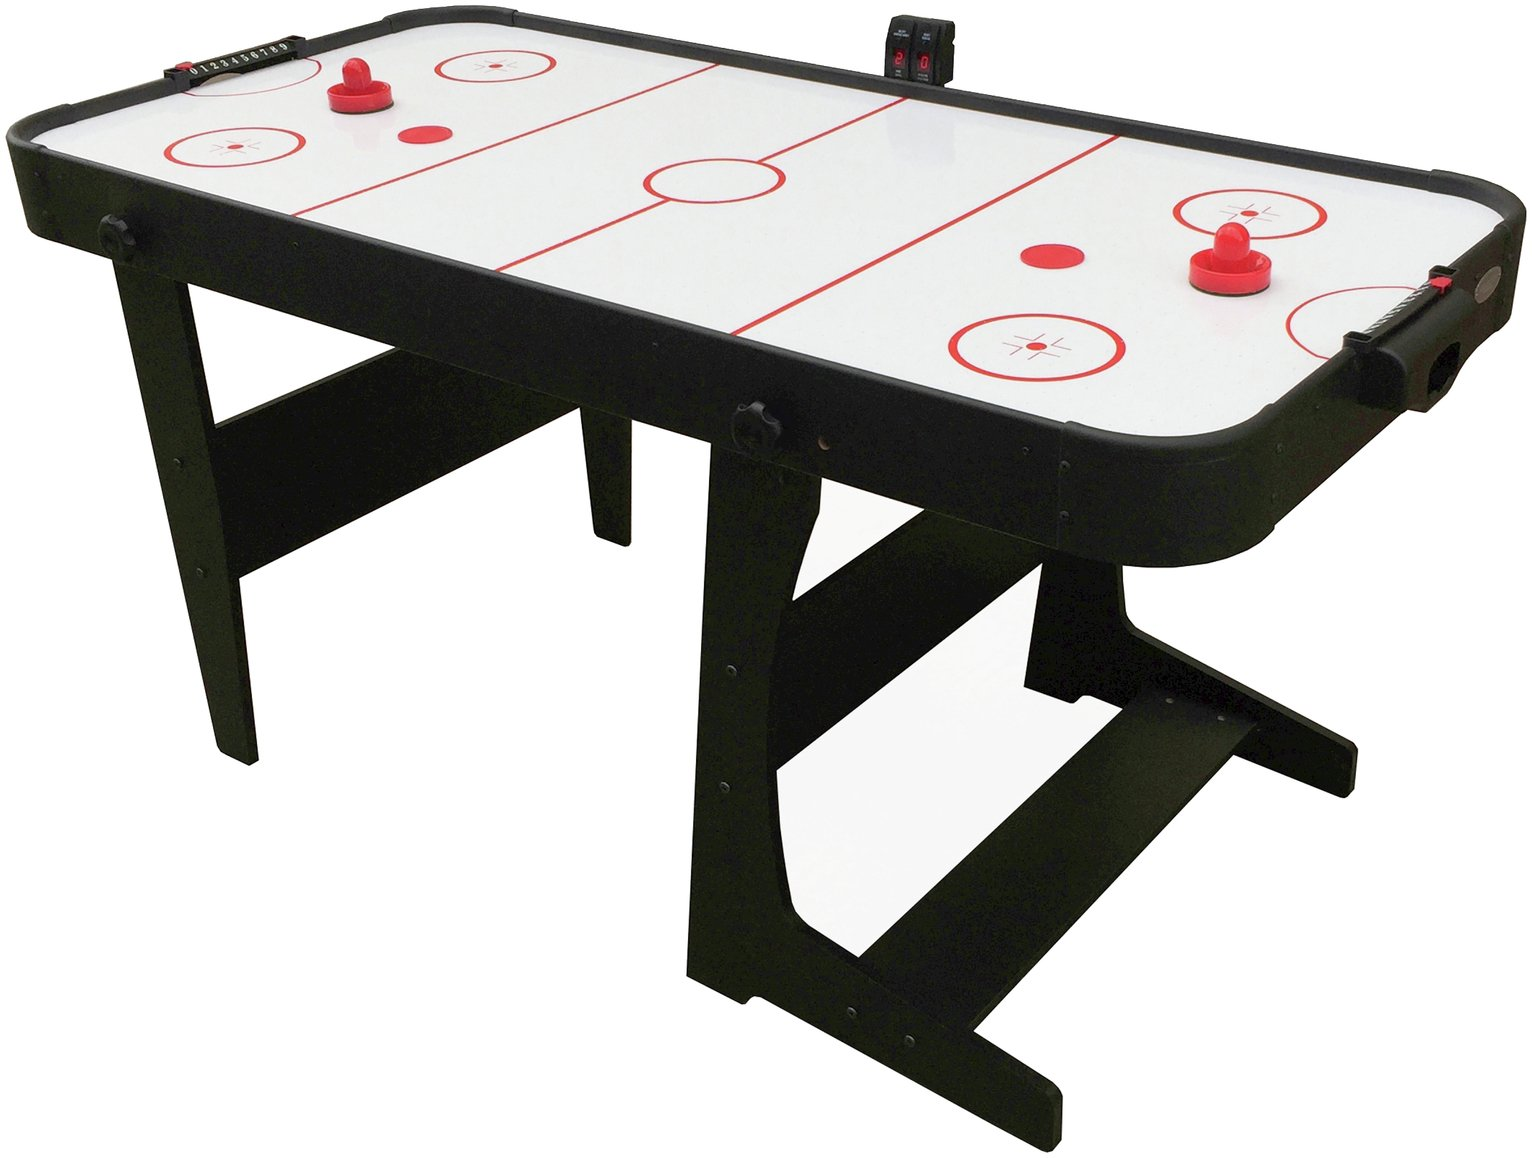 Gamesson 4ft 6 Inch Eagle Air Hockey Table review